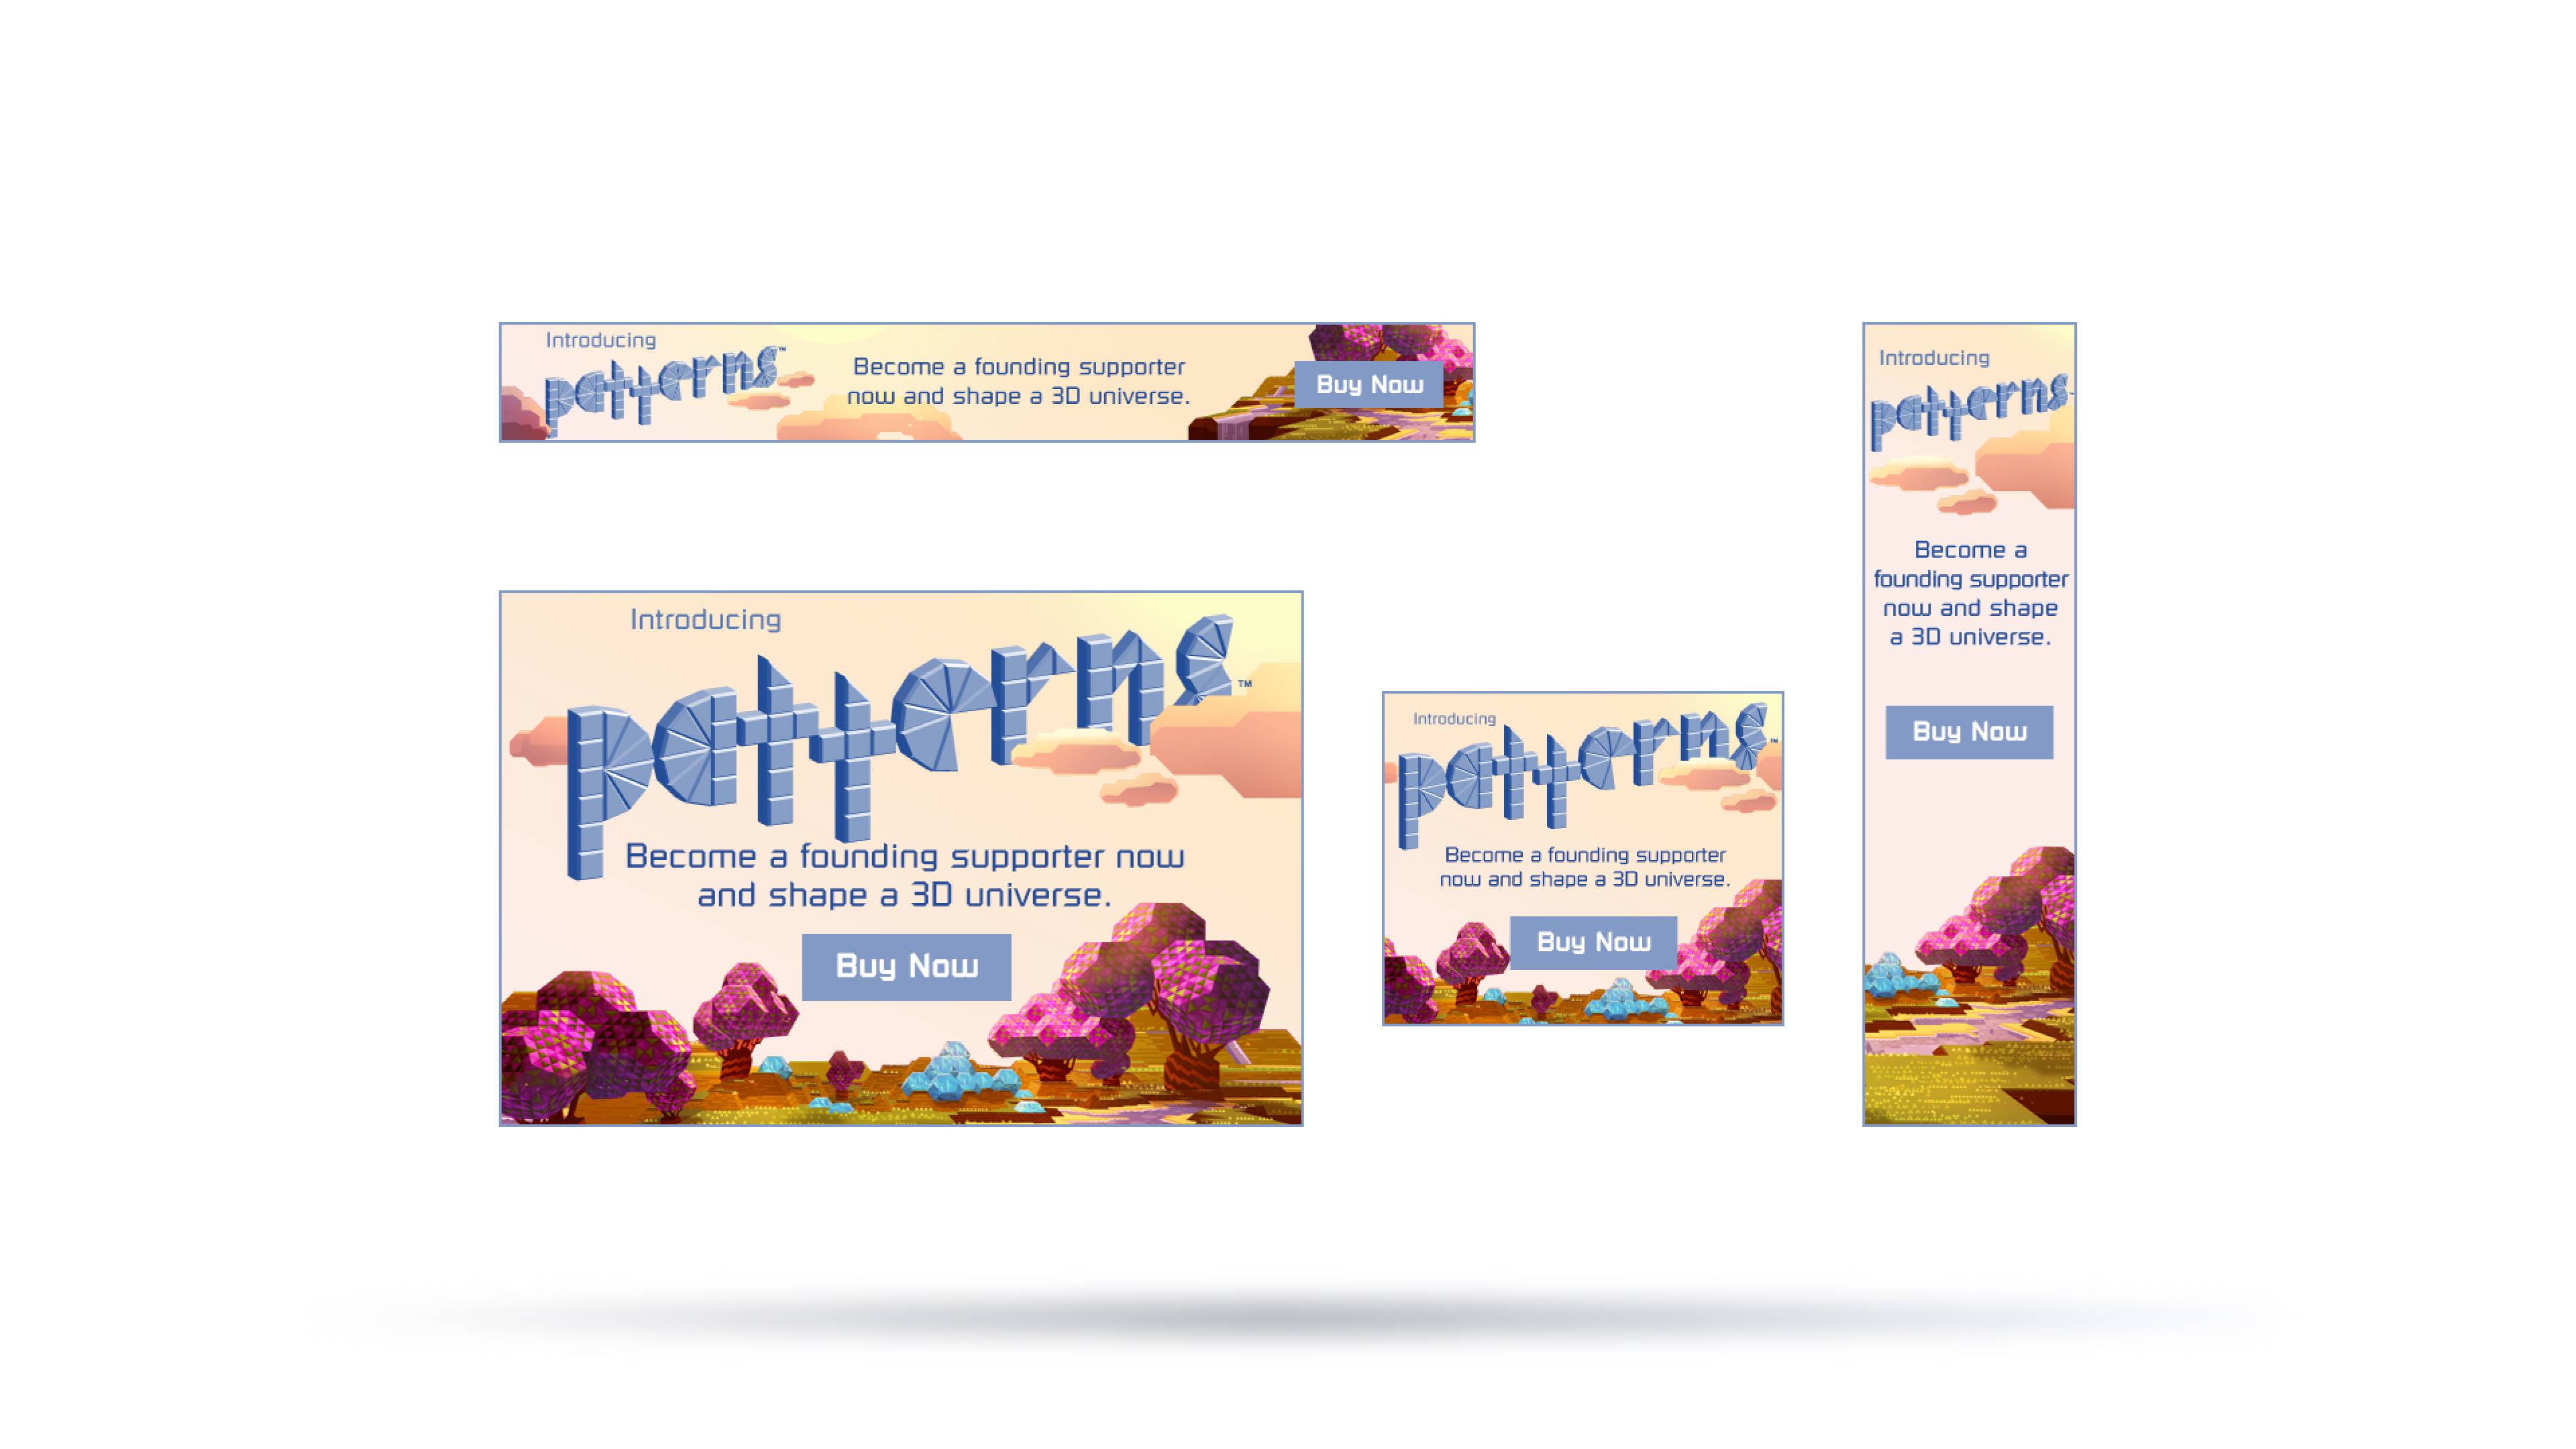 Patterns Banner Campaign Image